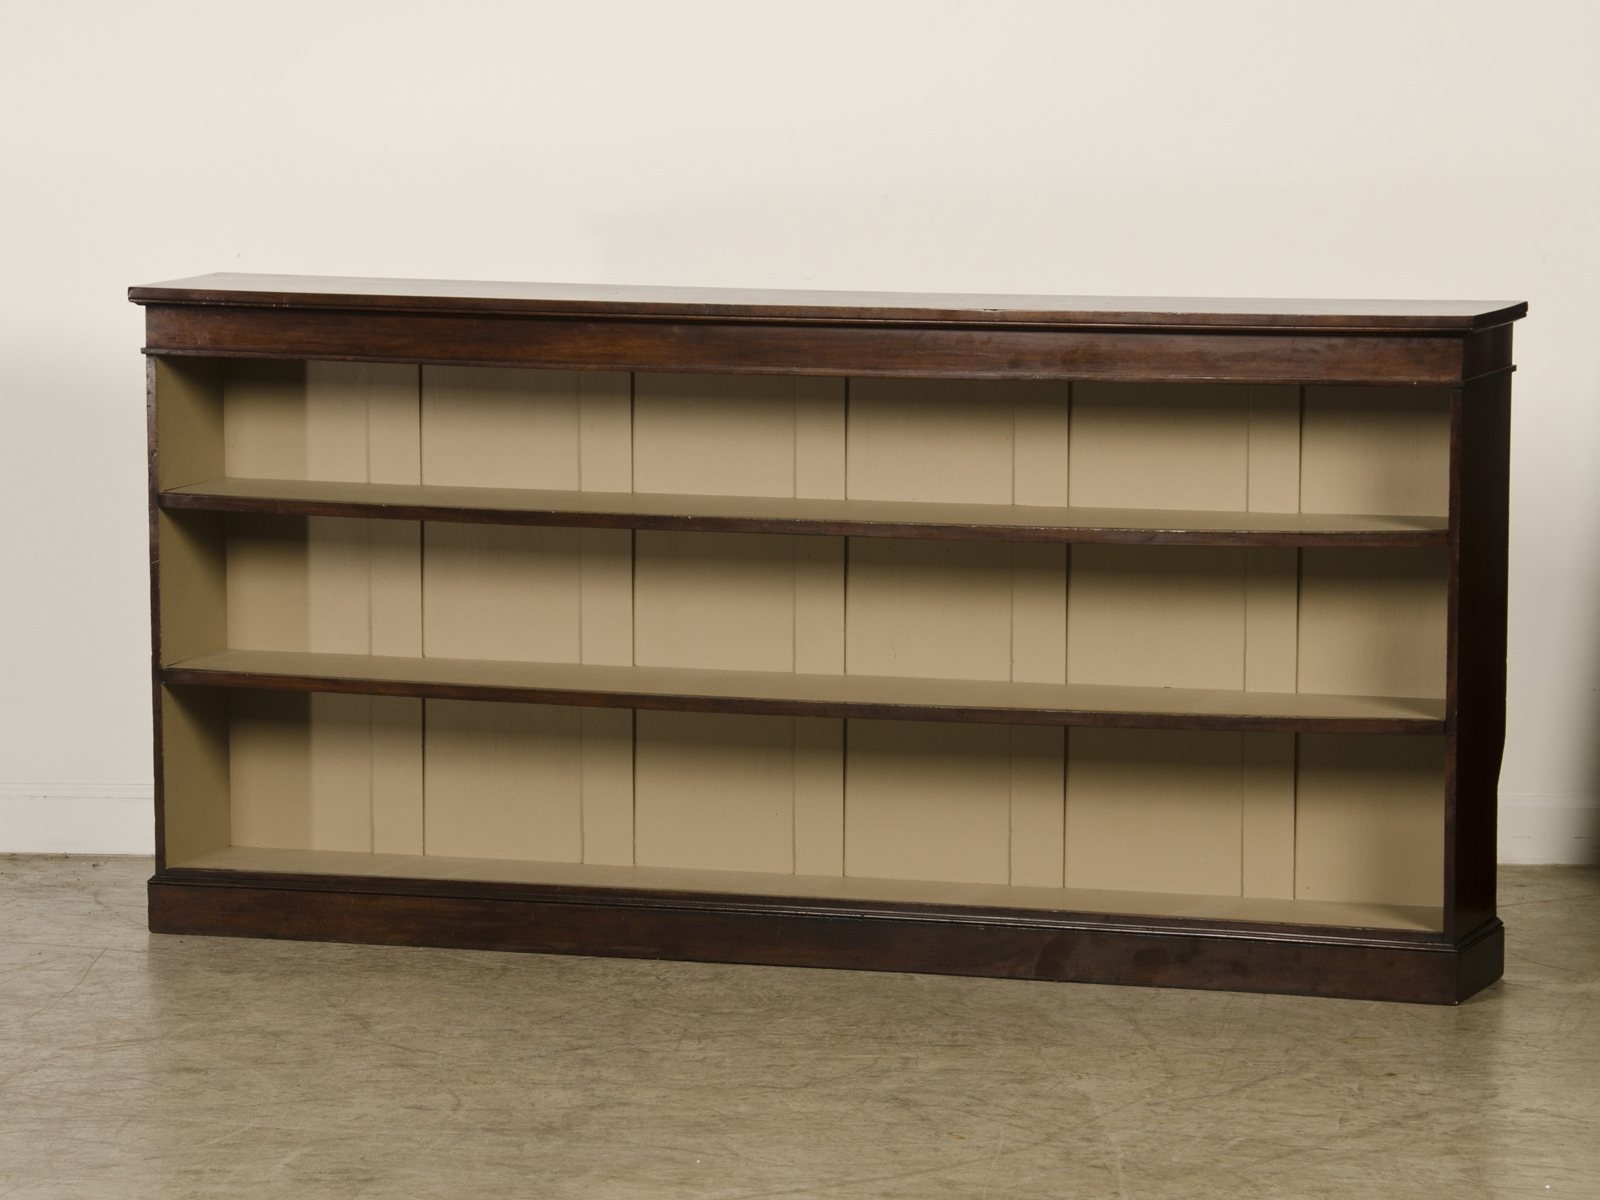 Wide Bookcase And Room For Low Bookcases (View 15 of 15)